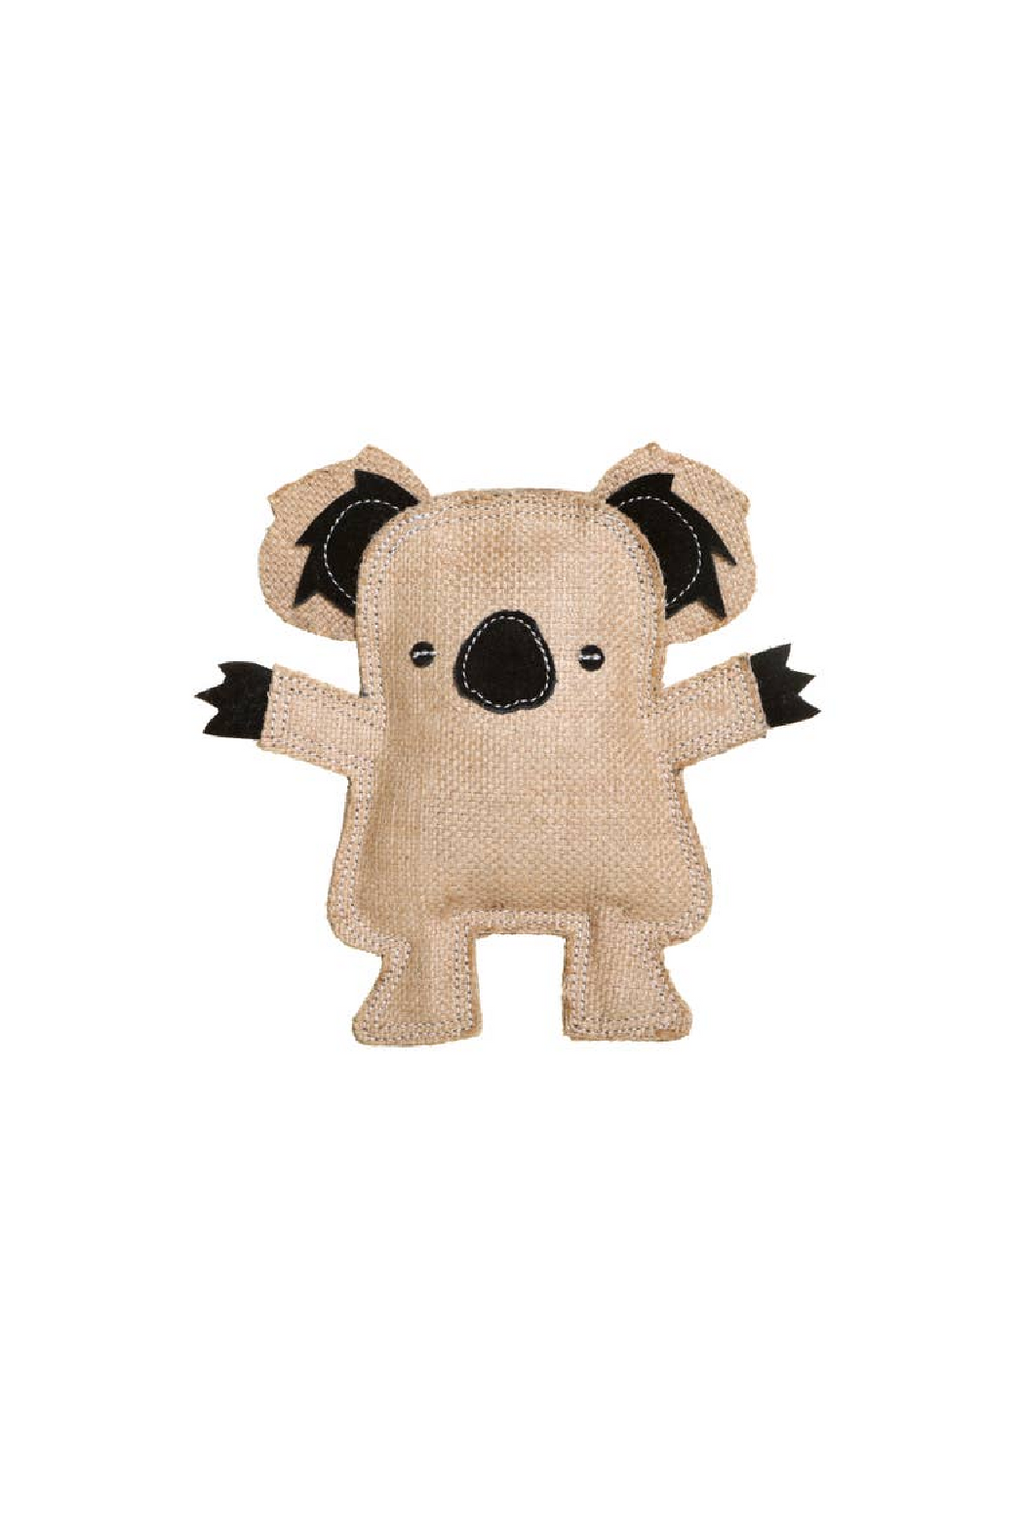 Outback Dog Toy - Koala